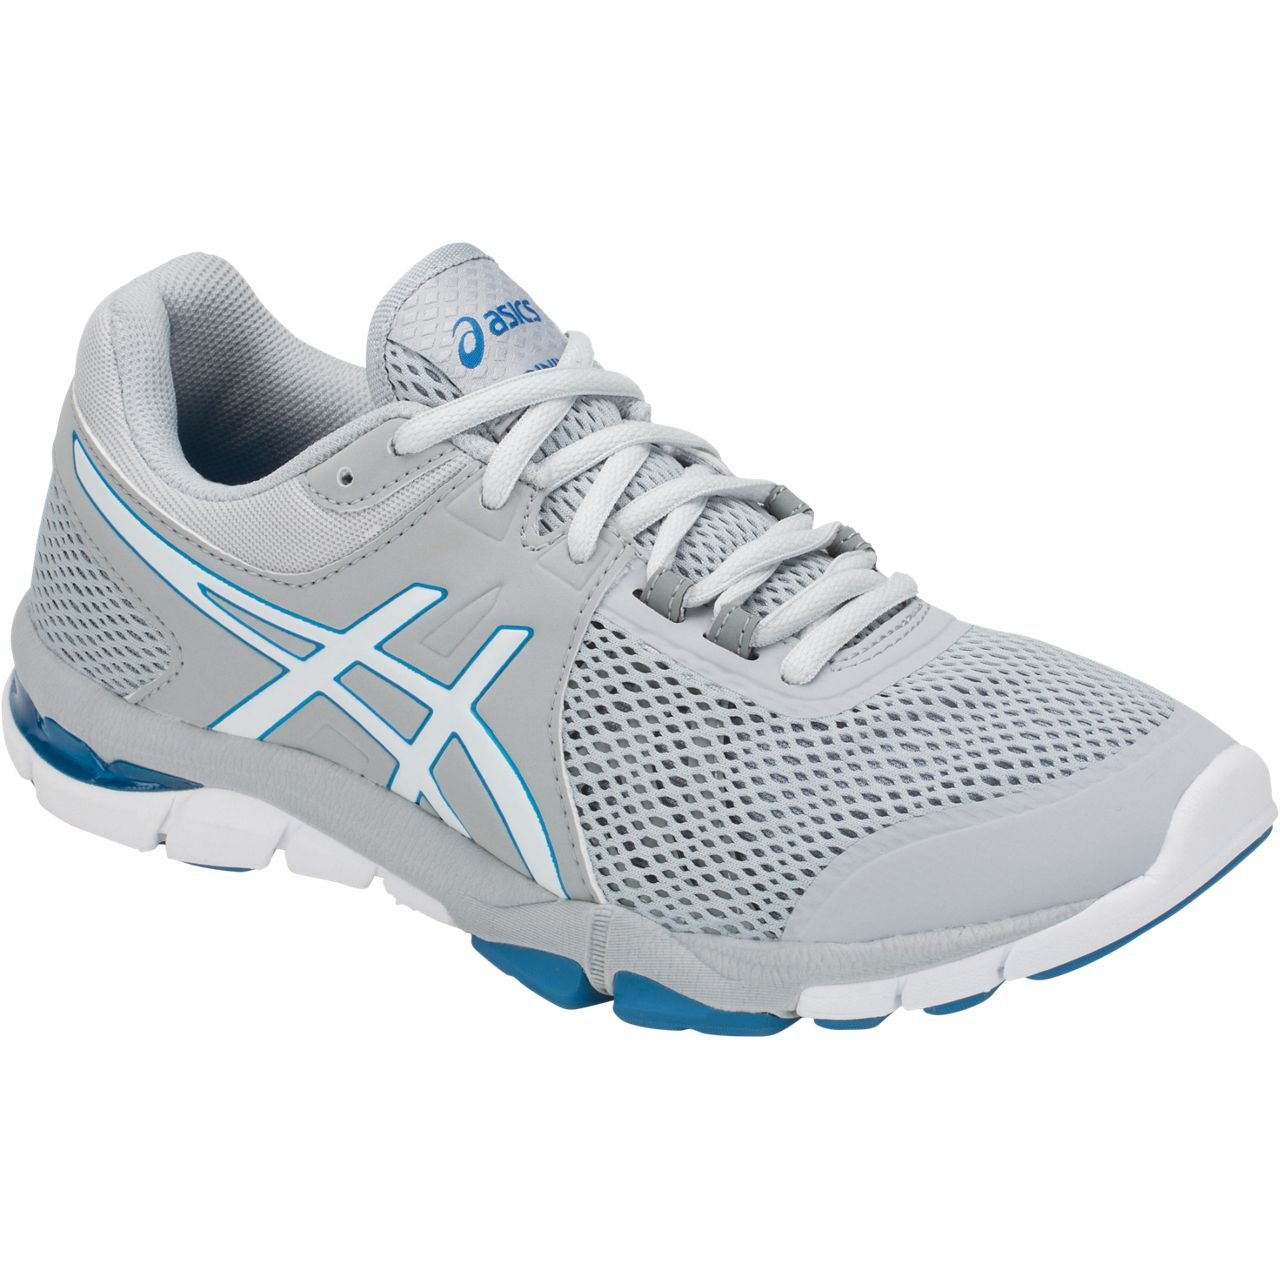 ASICS Women's Gel-Craze TR 4 Cross-Trainer Shoe B077NHYB1K 9 B(M) US|Mid Grey/White